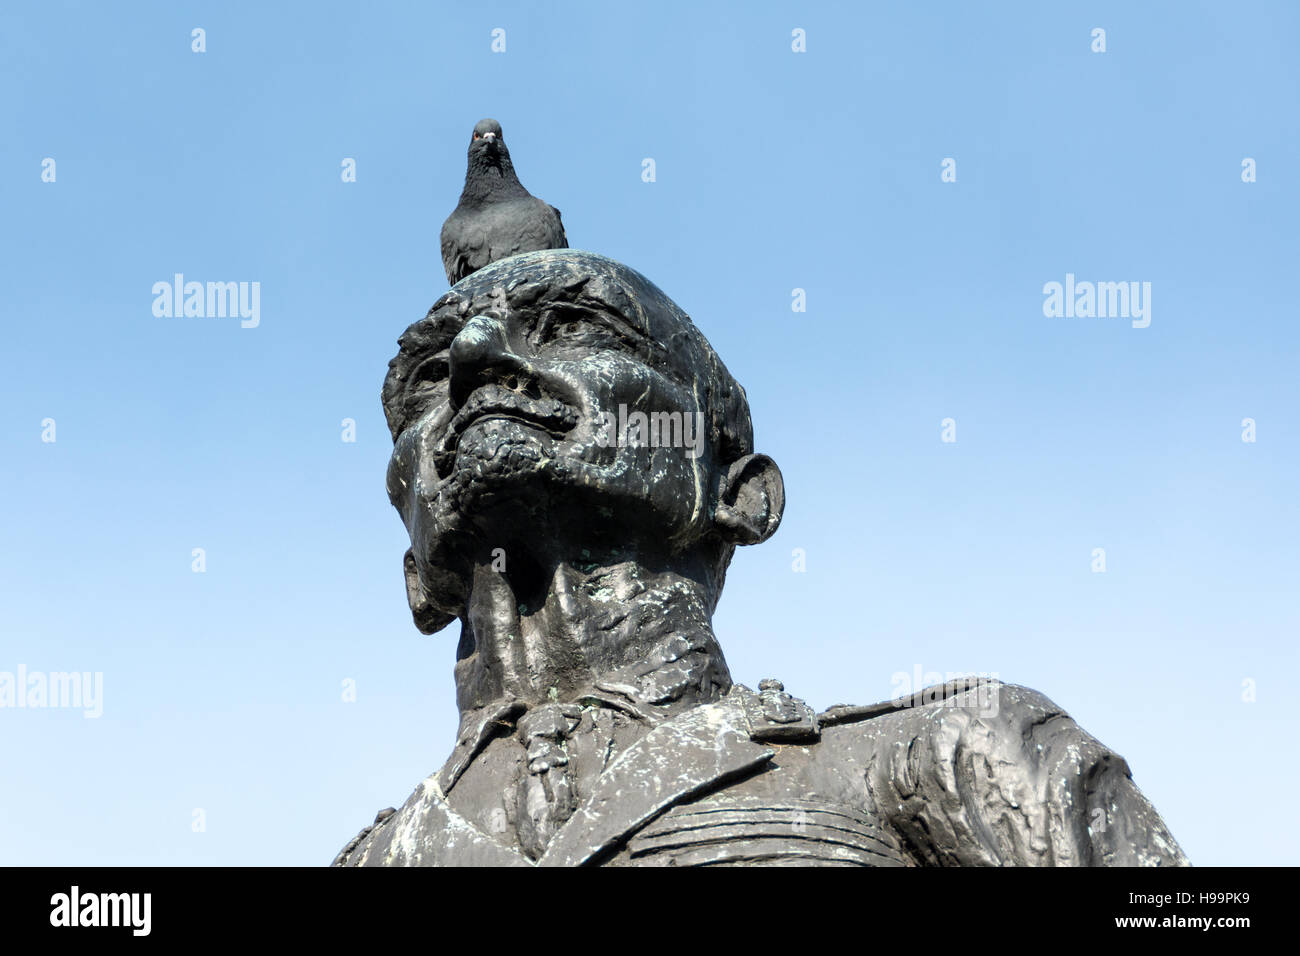 Statue of General Smuts, By Jacob Epstein, outside the Houses of Parliament in Parliament Square, London, England, - Stock Image